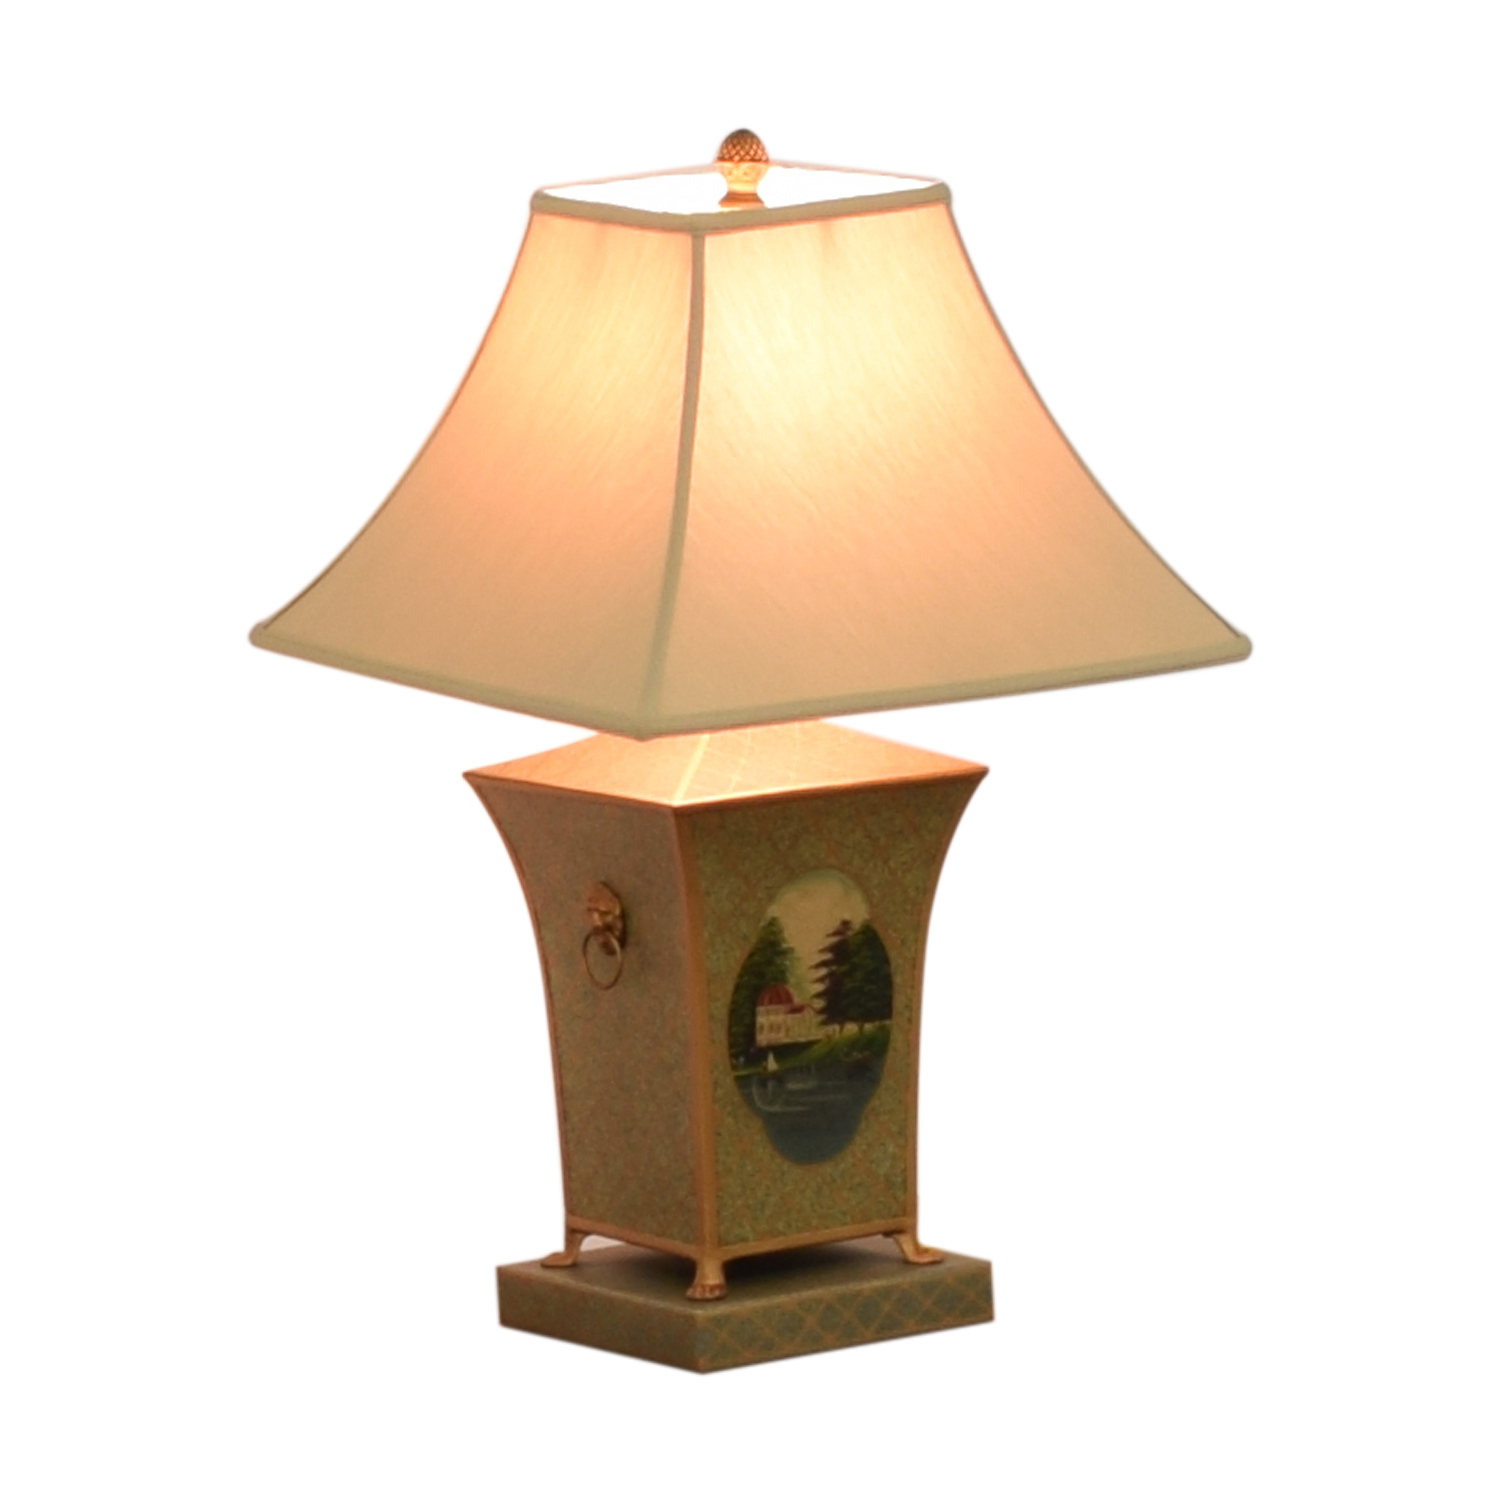 Decorative Crafts Decorative Crafts Table Lamp discount